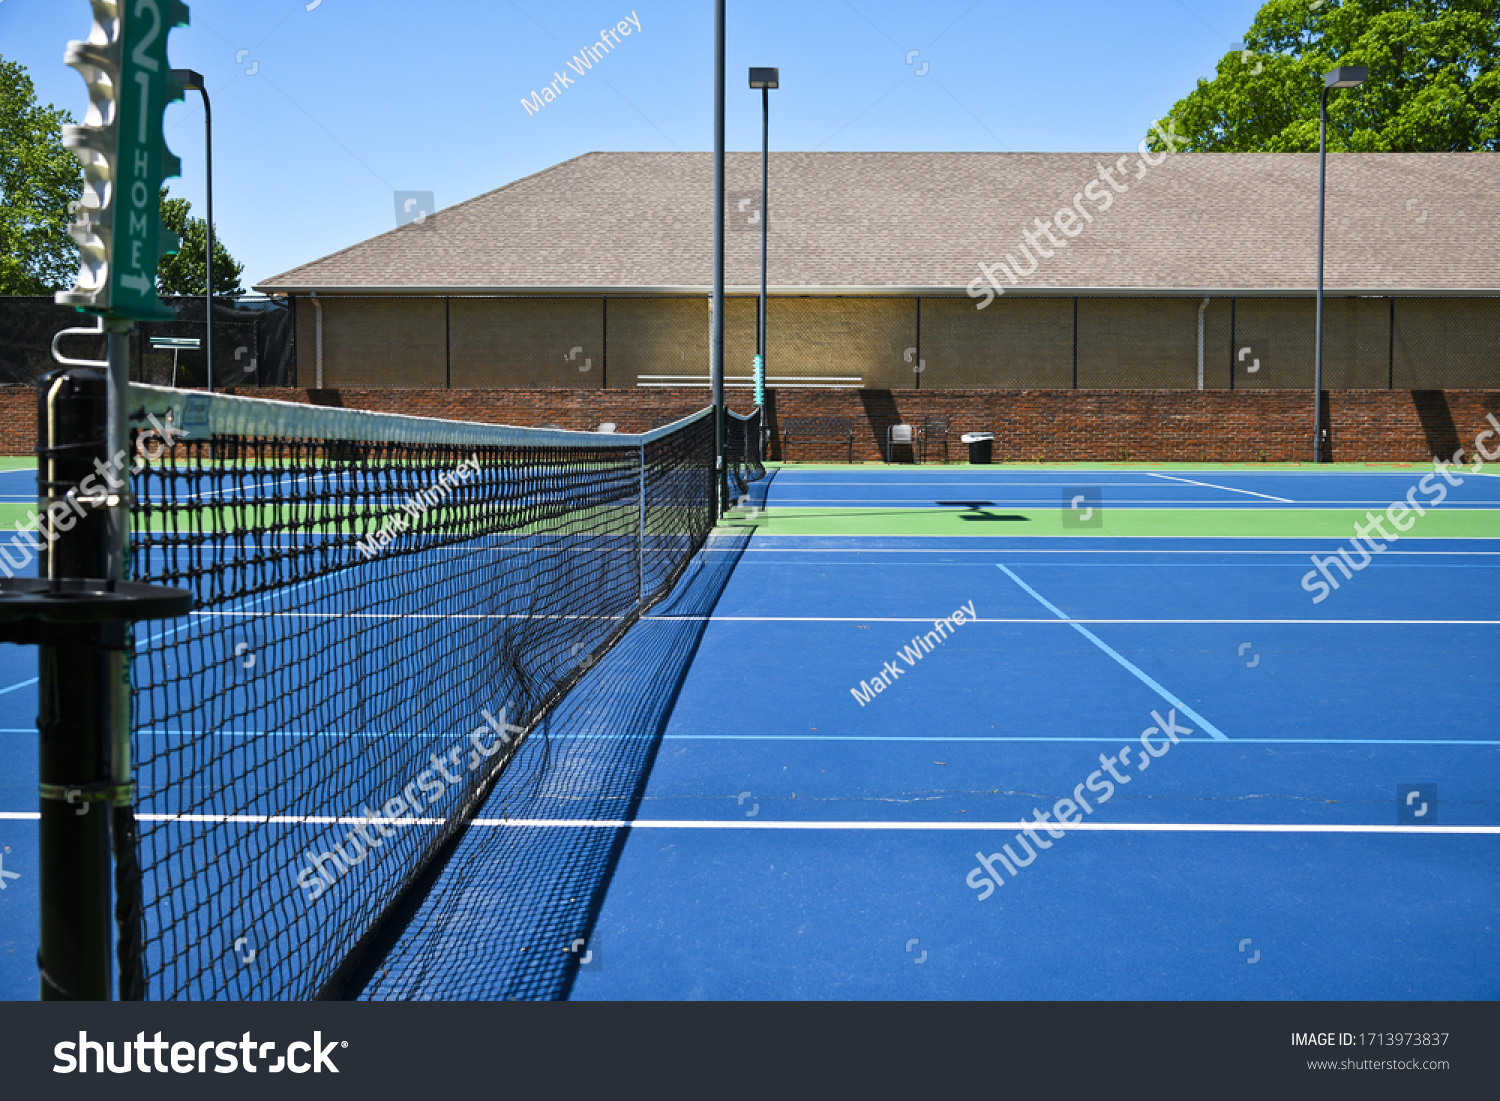 stock-photo-empty-tennis-courts-closed-d